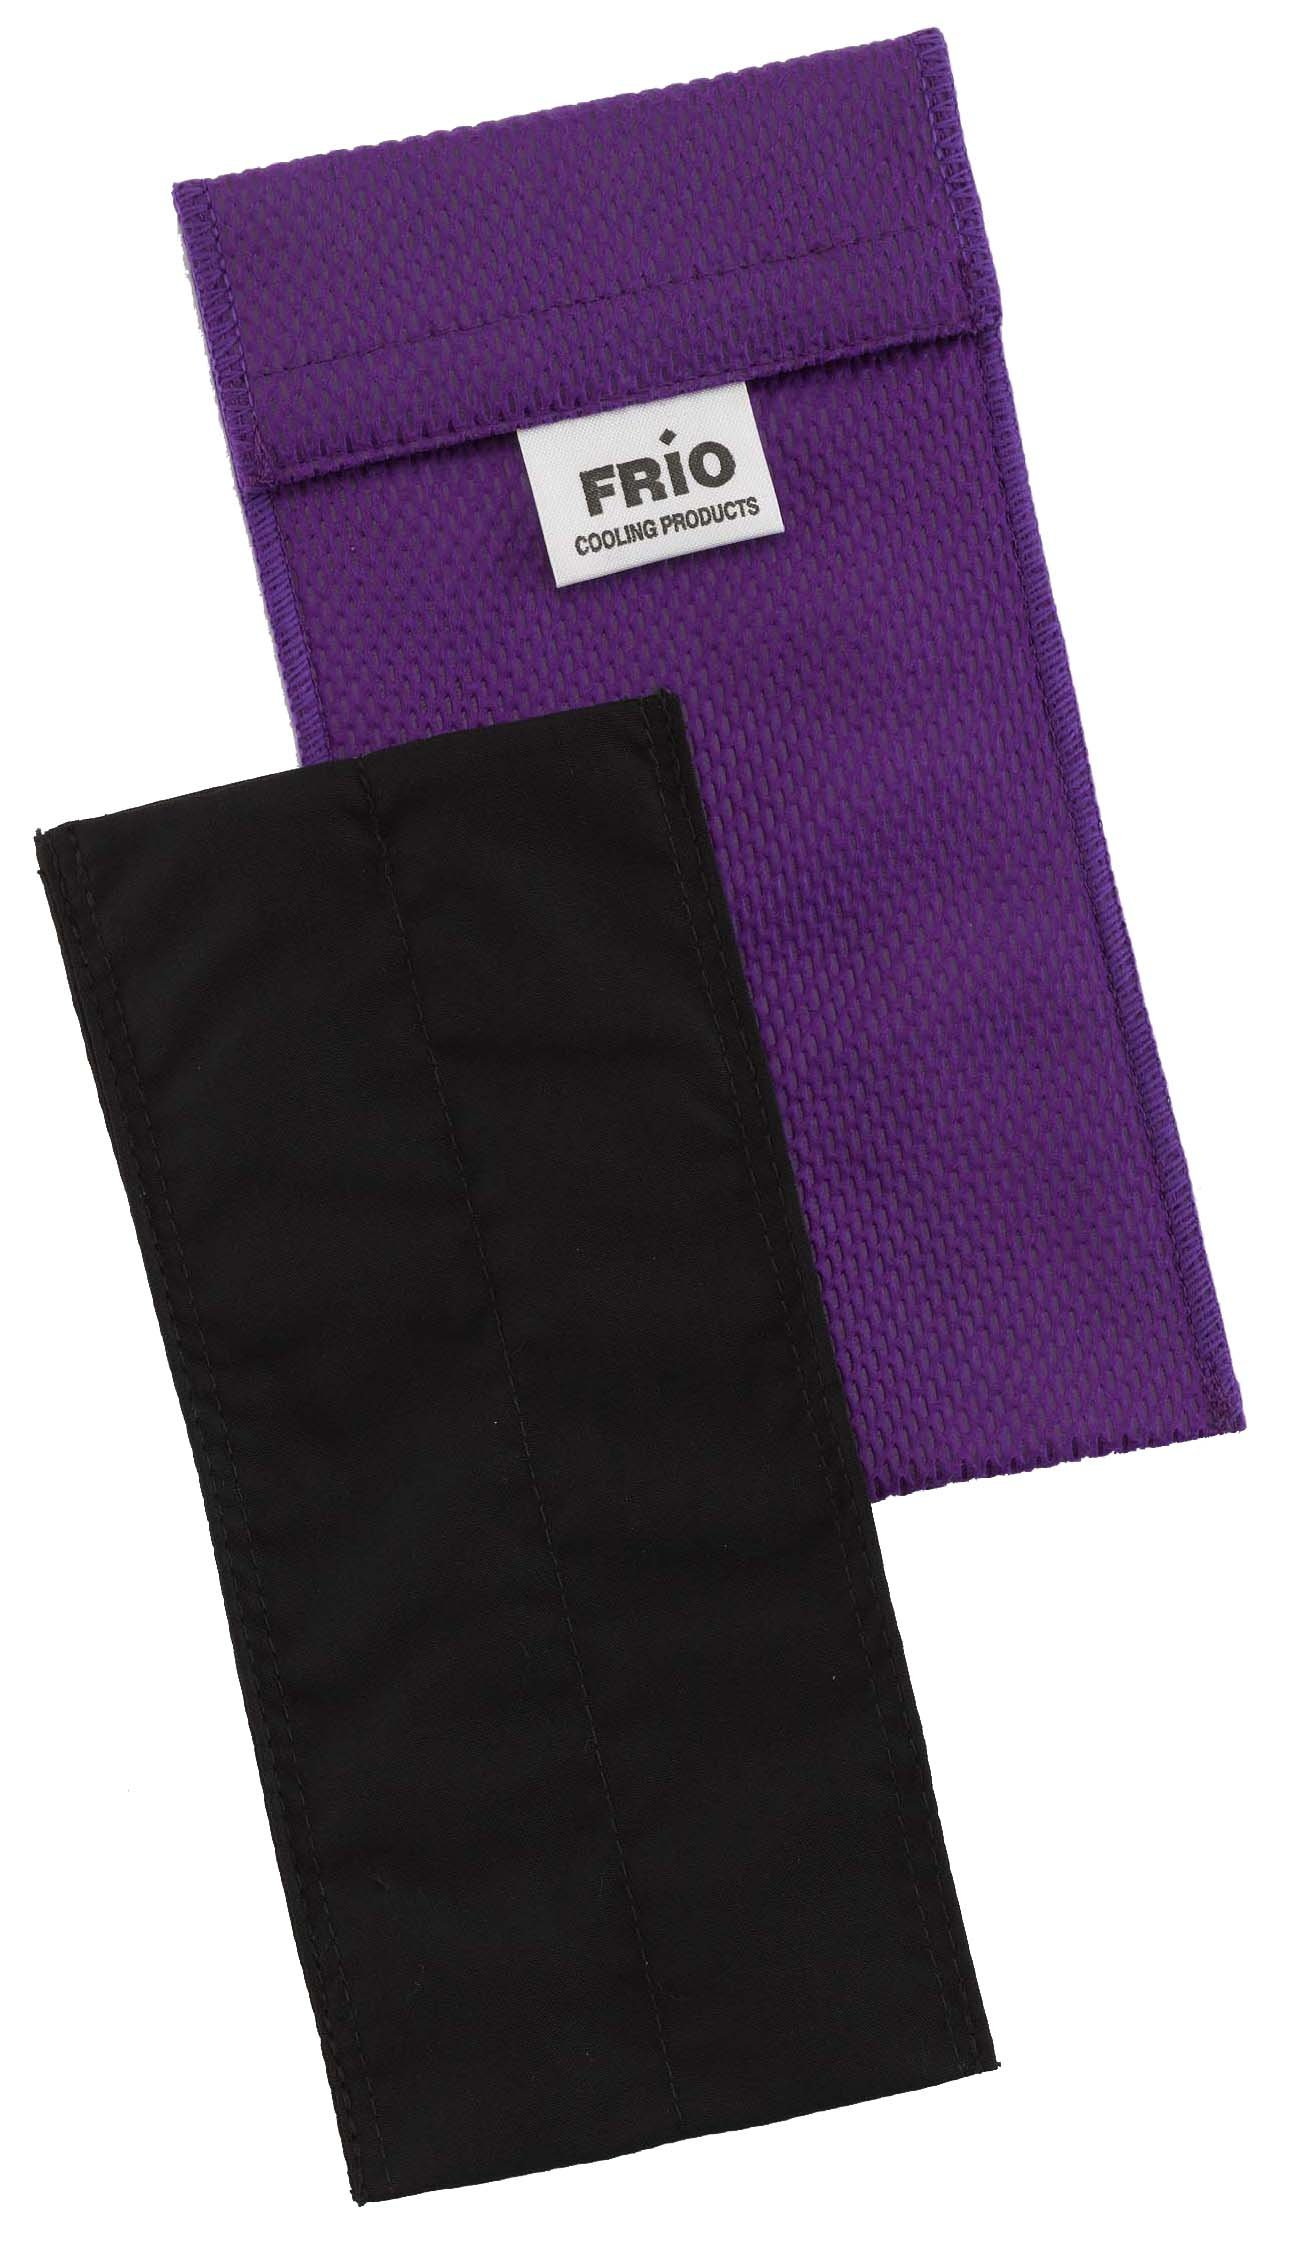 FRIO Cooling Wallet-DUO - Purple - Keep insulin cool without EVER needing icepacks or refrigeration! ACCEPT NO IMITATION! Low shipping rates.